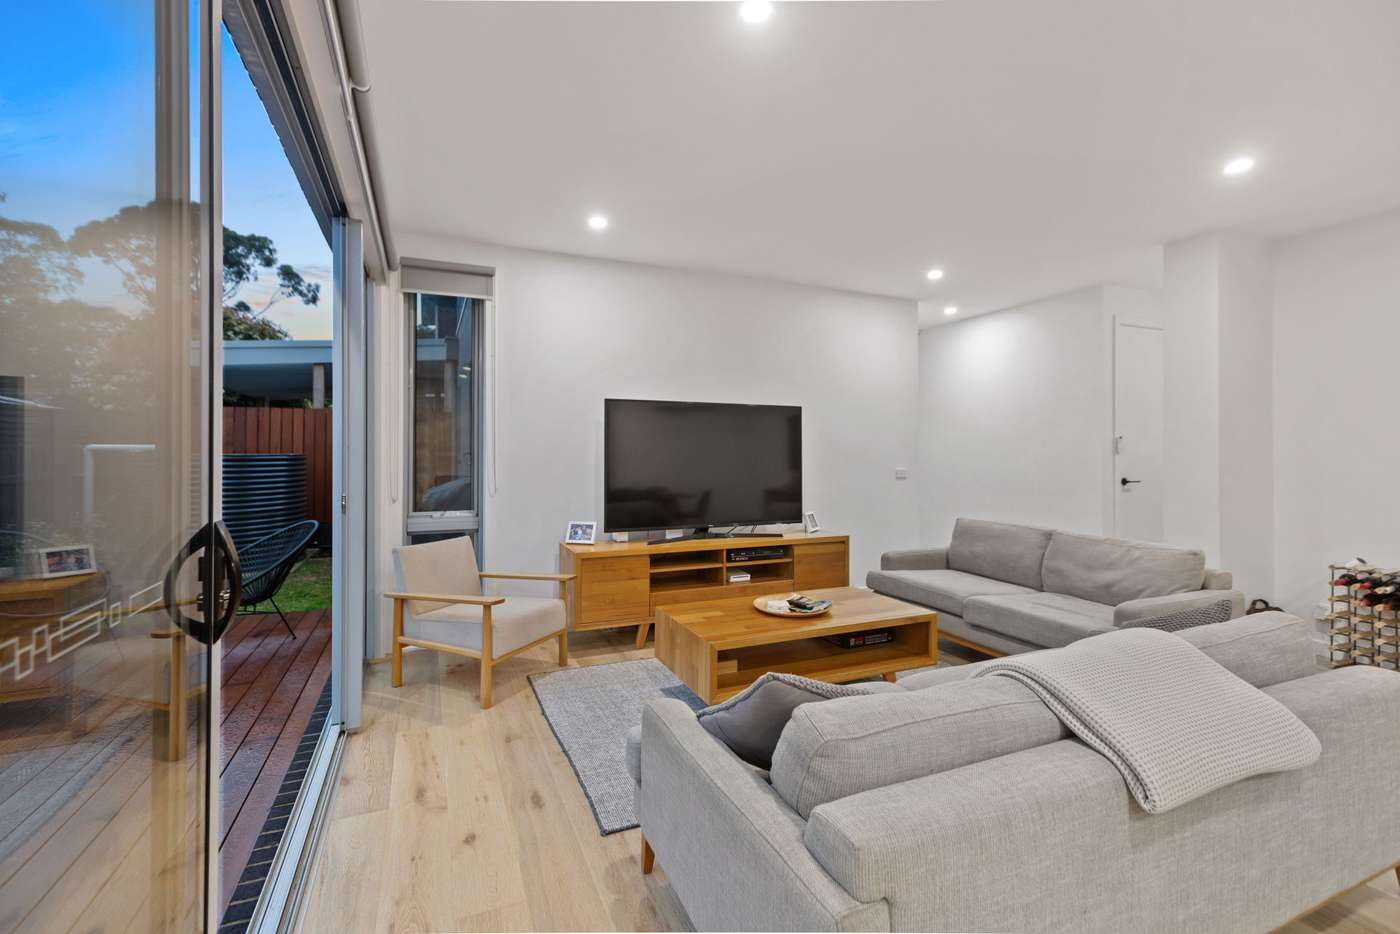 Sixth view of Homely townhouse listing, 2/67 Lawson Avenue, Frankston South VIC 3199